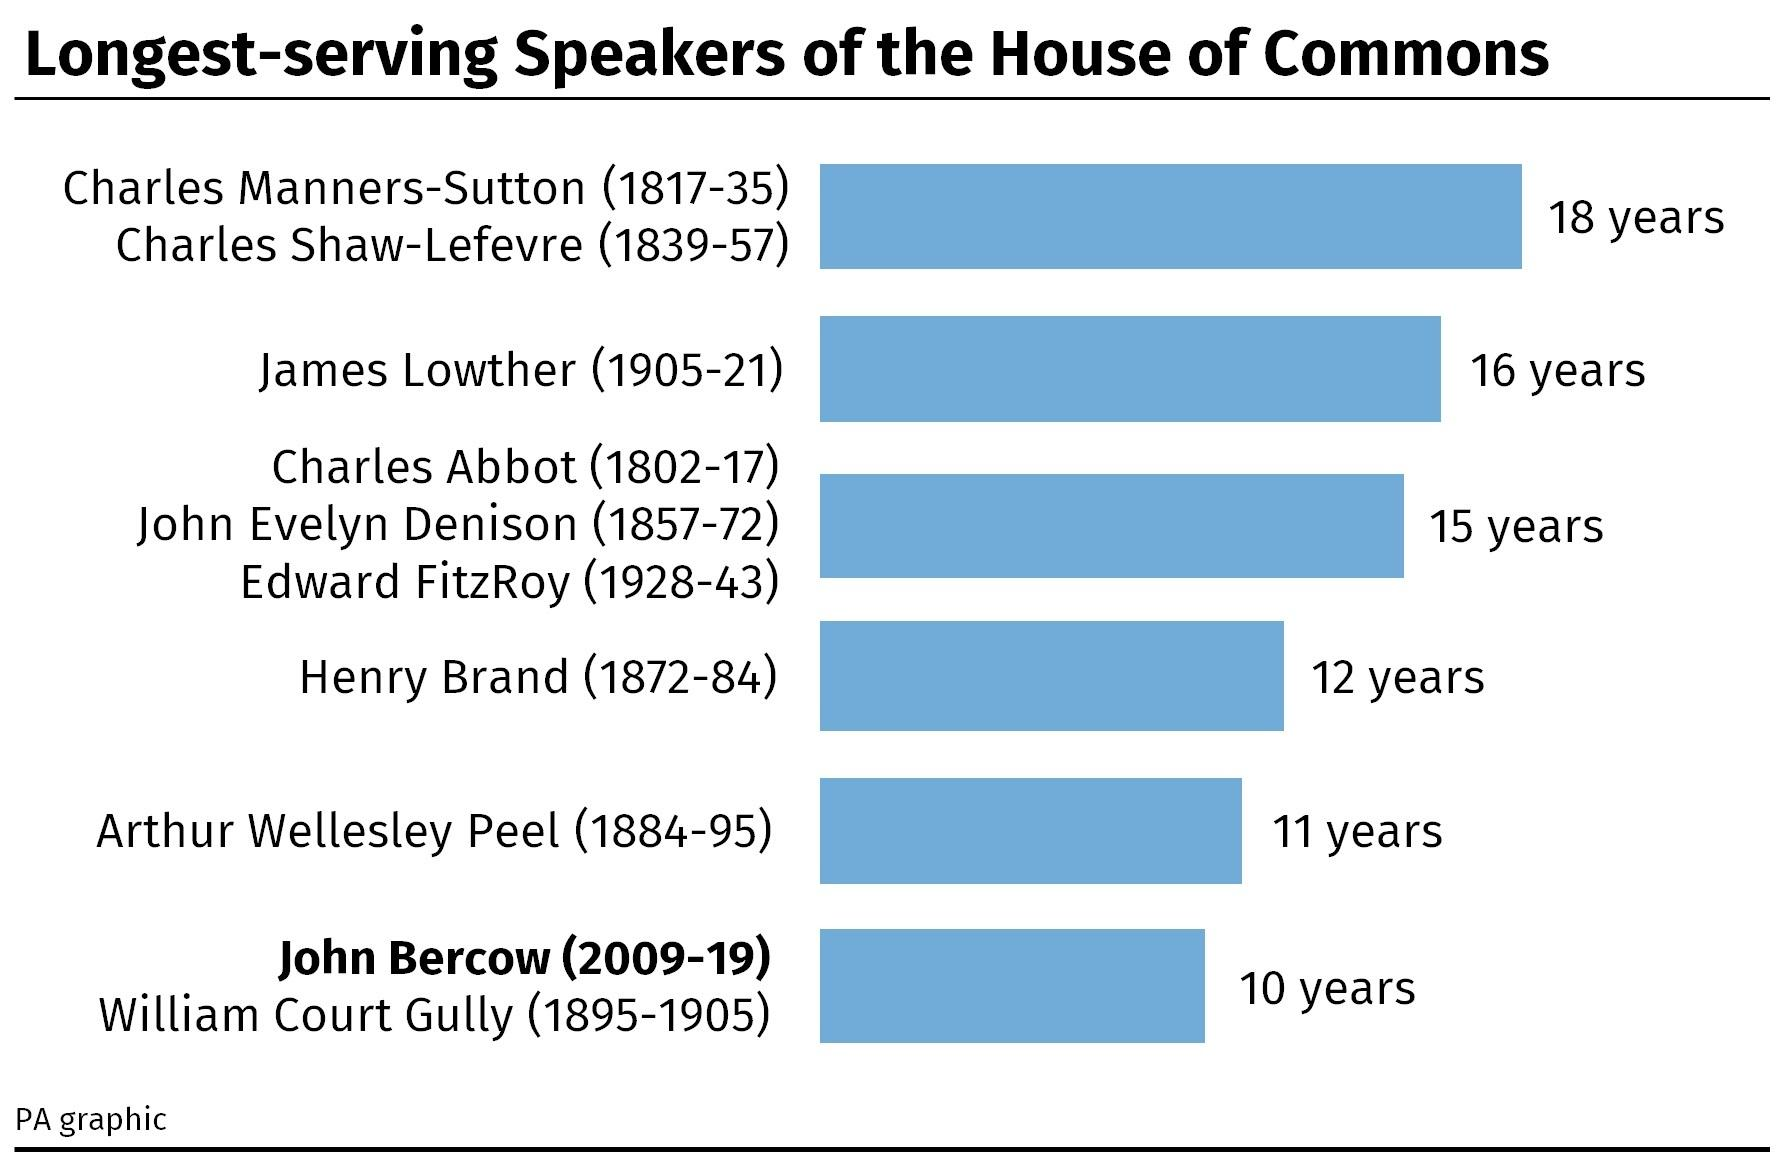 Longest-serving Speakers of the House of Commons. (PA)